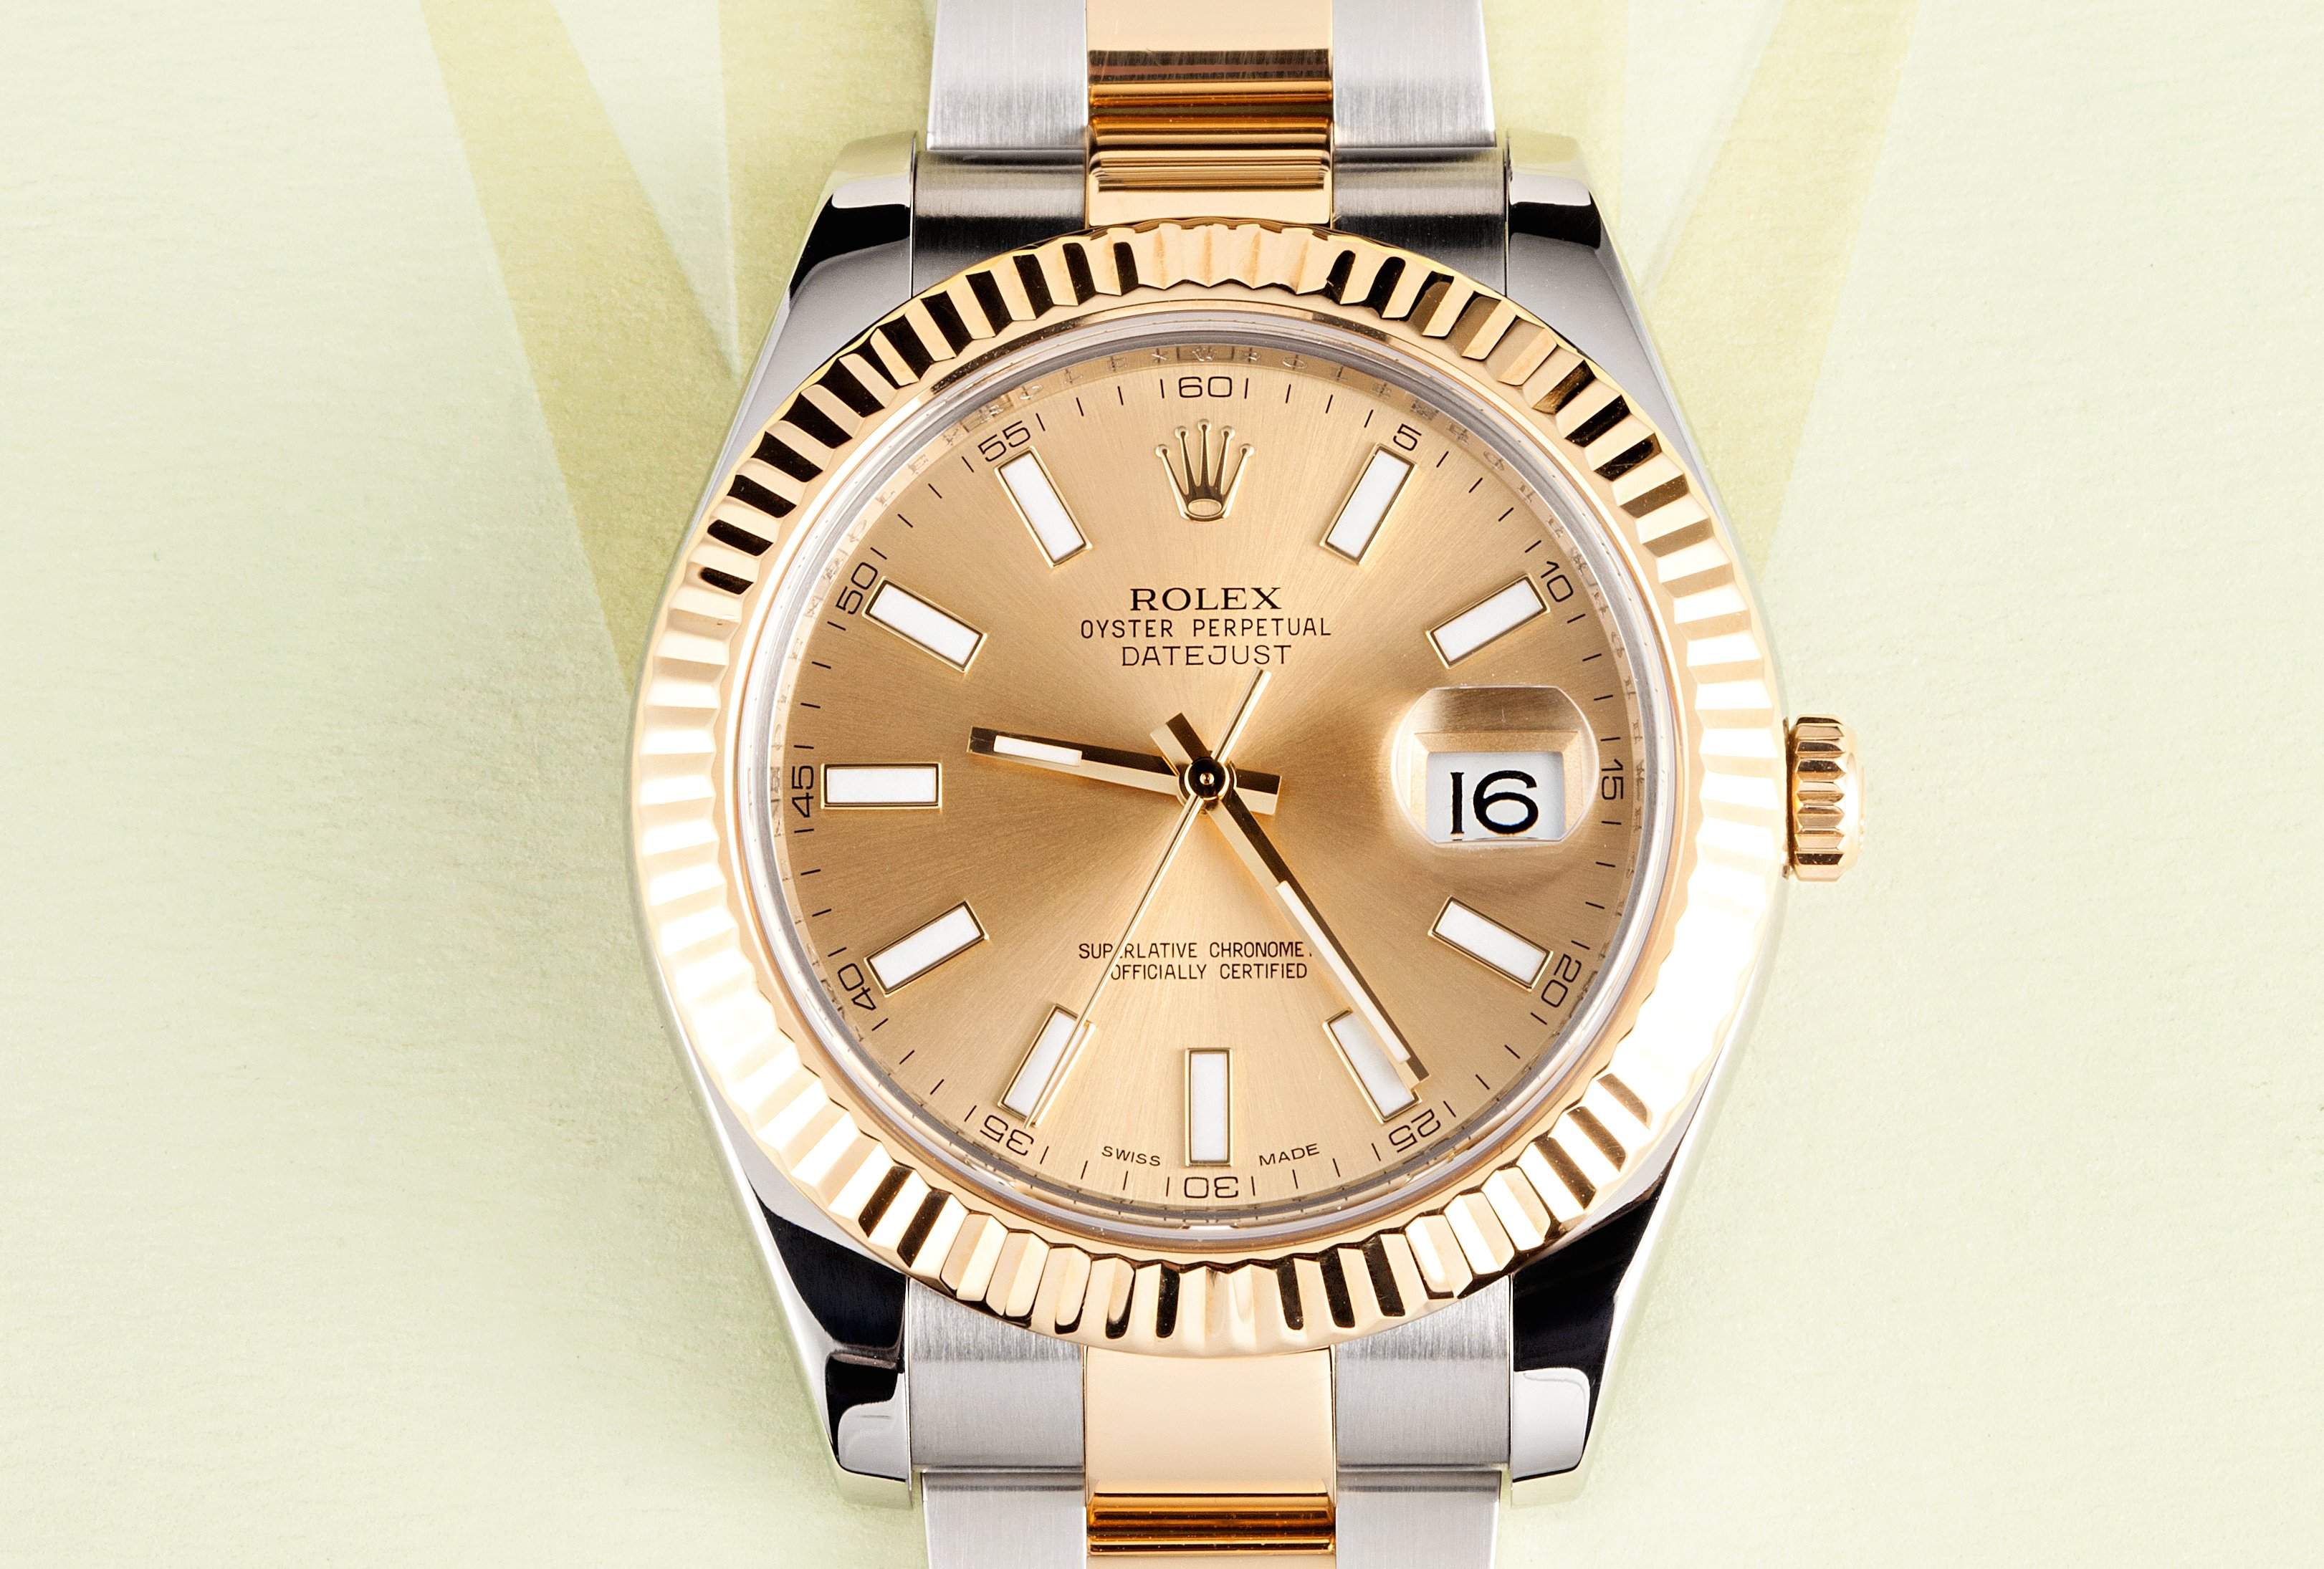 band champagne lady gallery datejust and fluted rolex steel jubilee gold dial square watch settings watches ladies diamond bezel